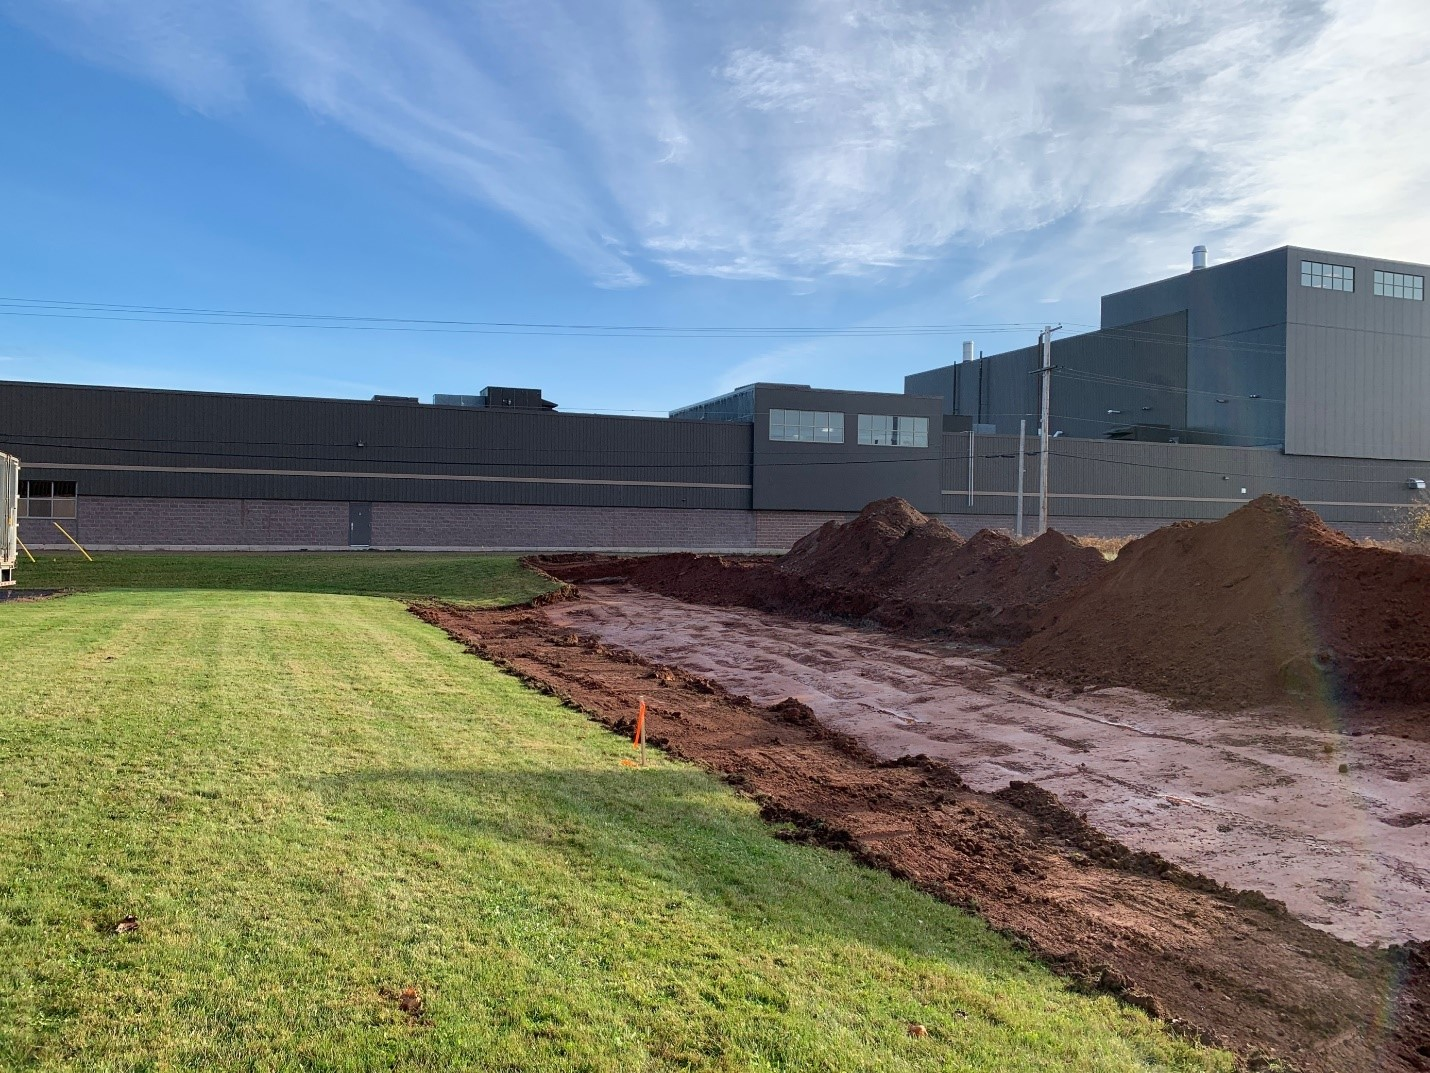 Emmerson - Industrial construction project